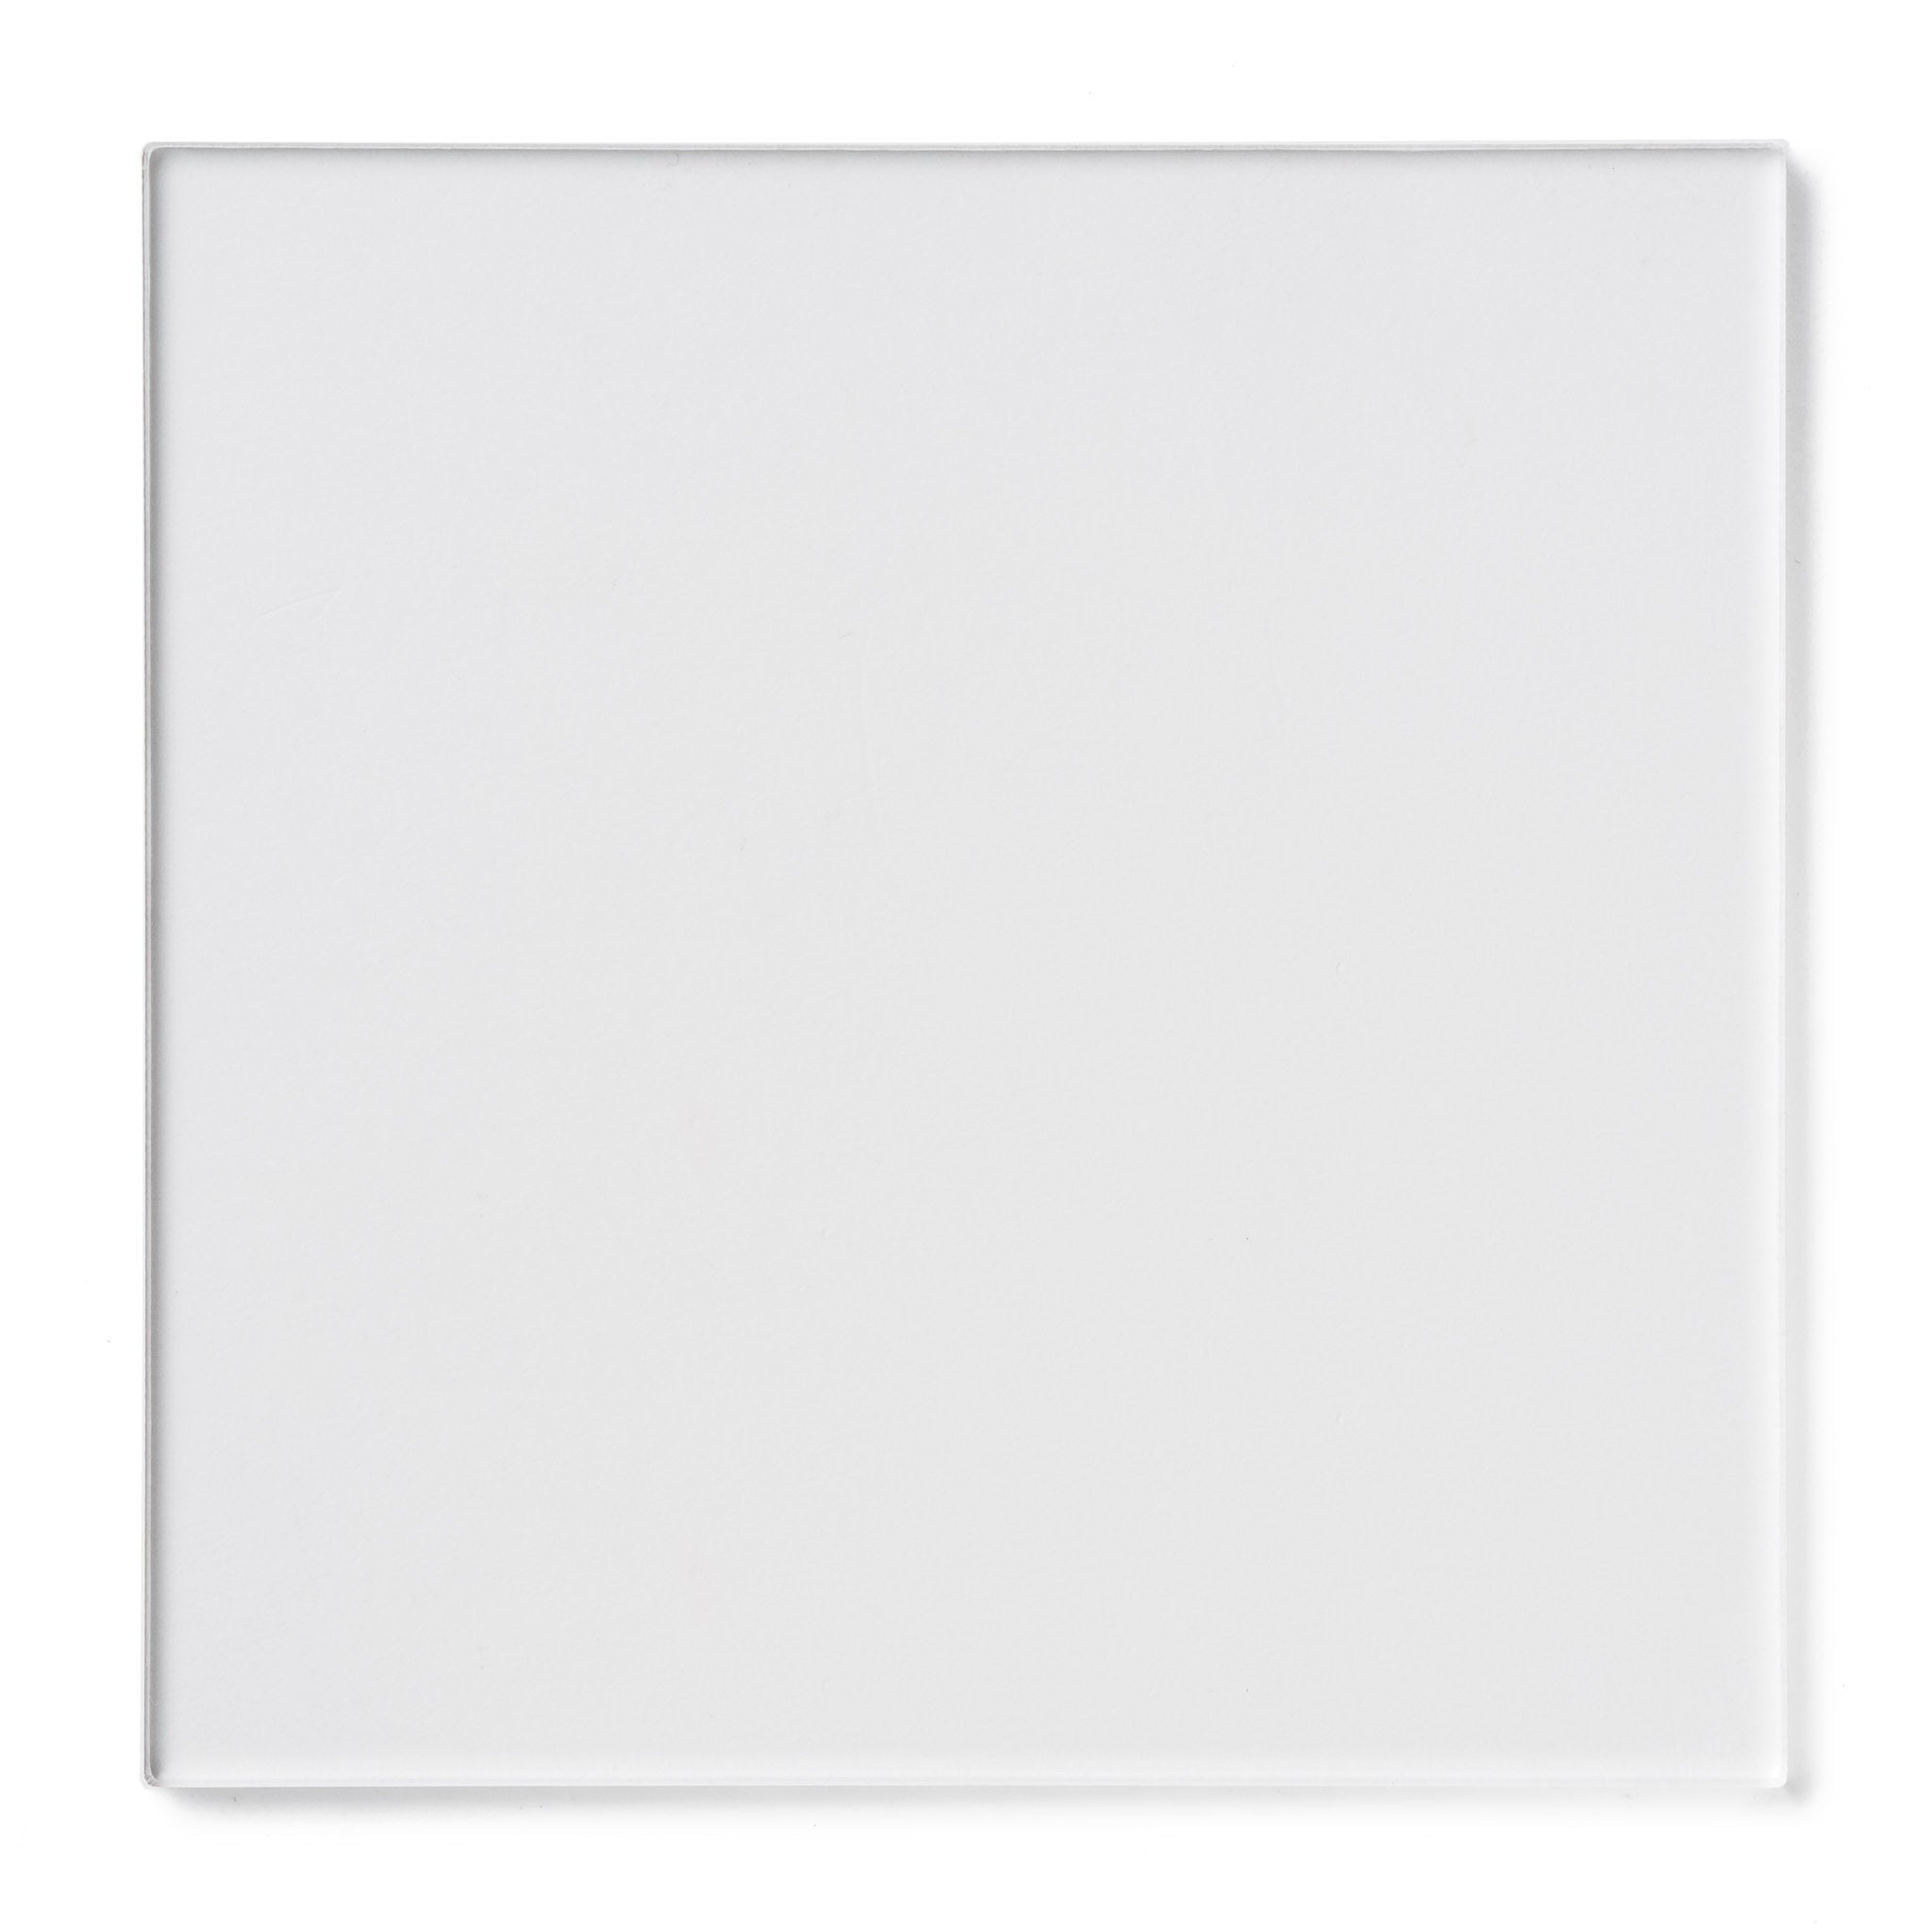 "Clear Colorless 0.040"" Acrylic Plexiglass Sheet"